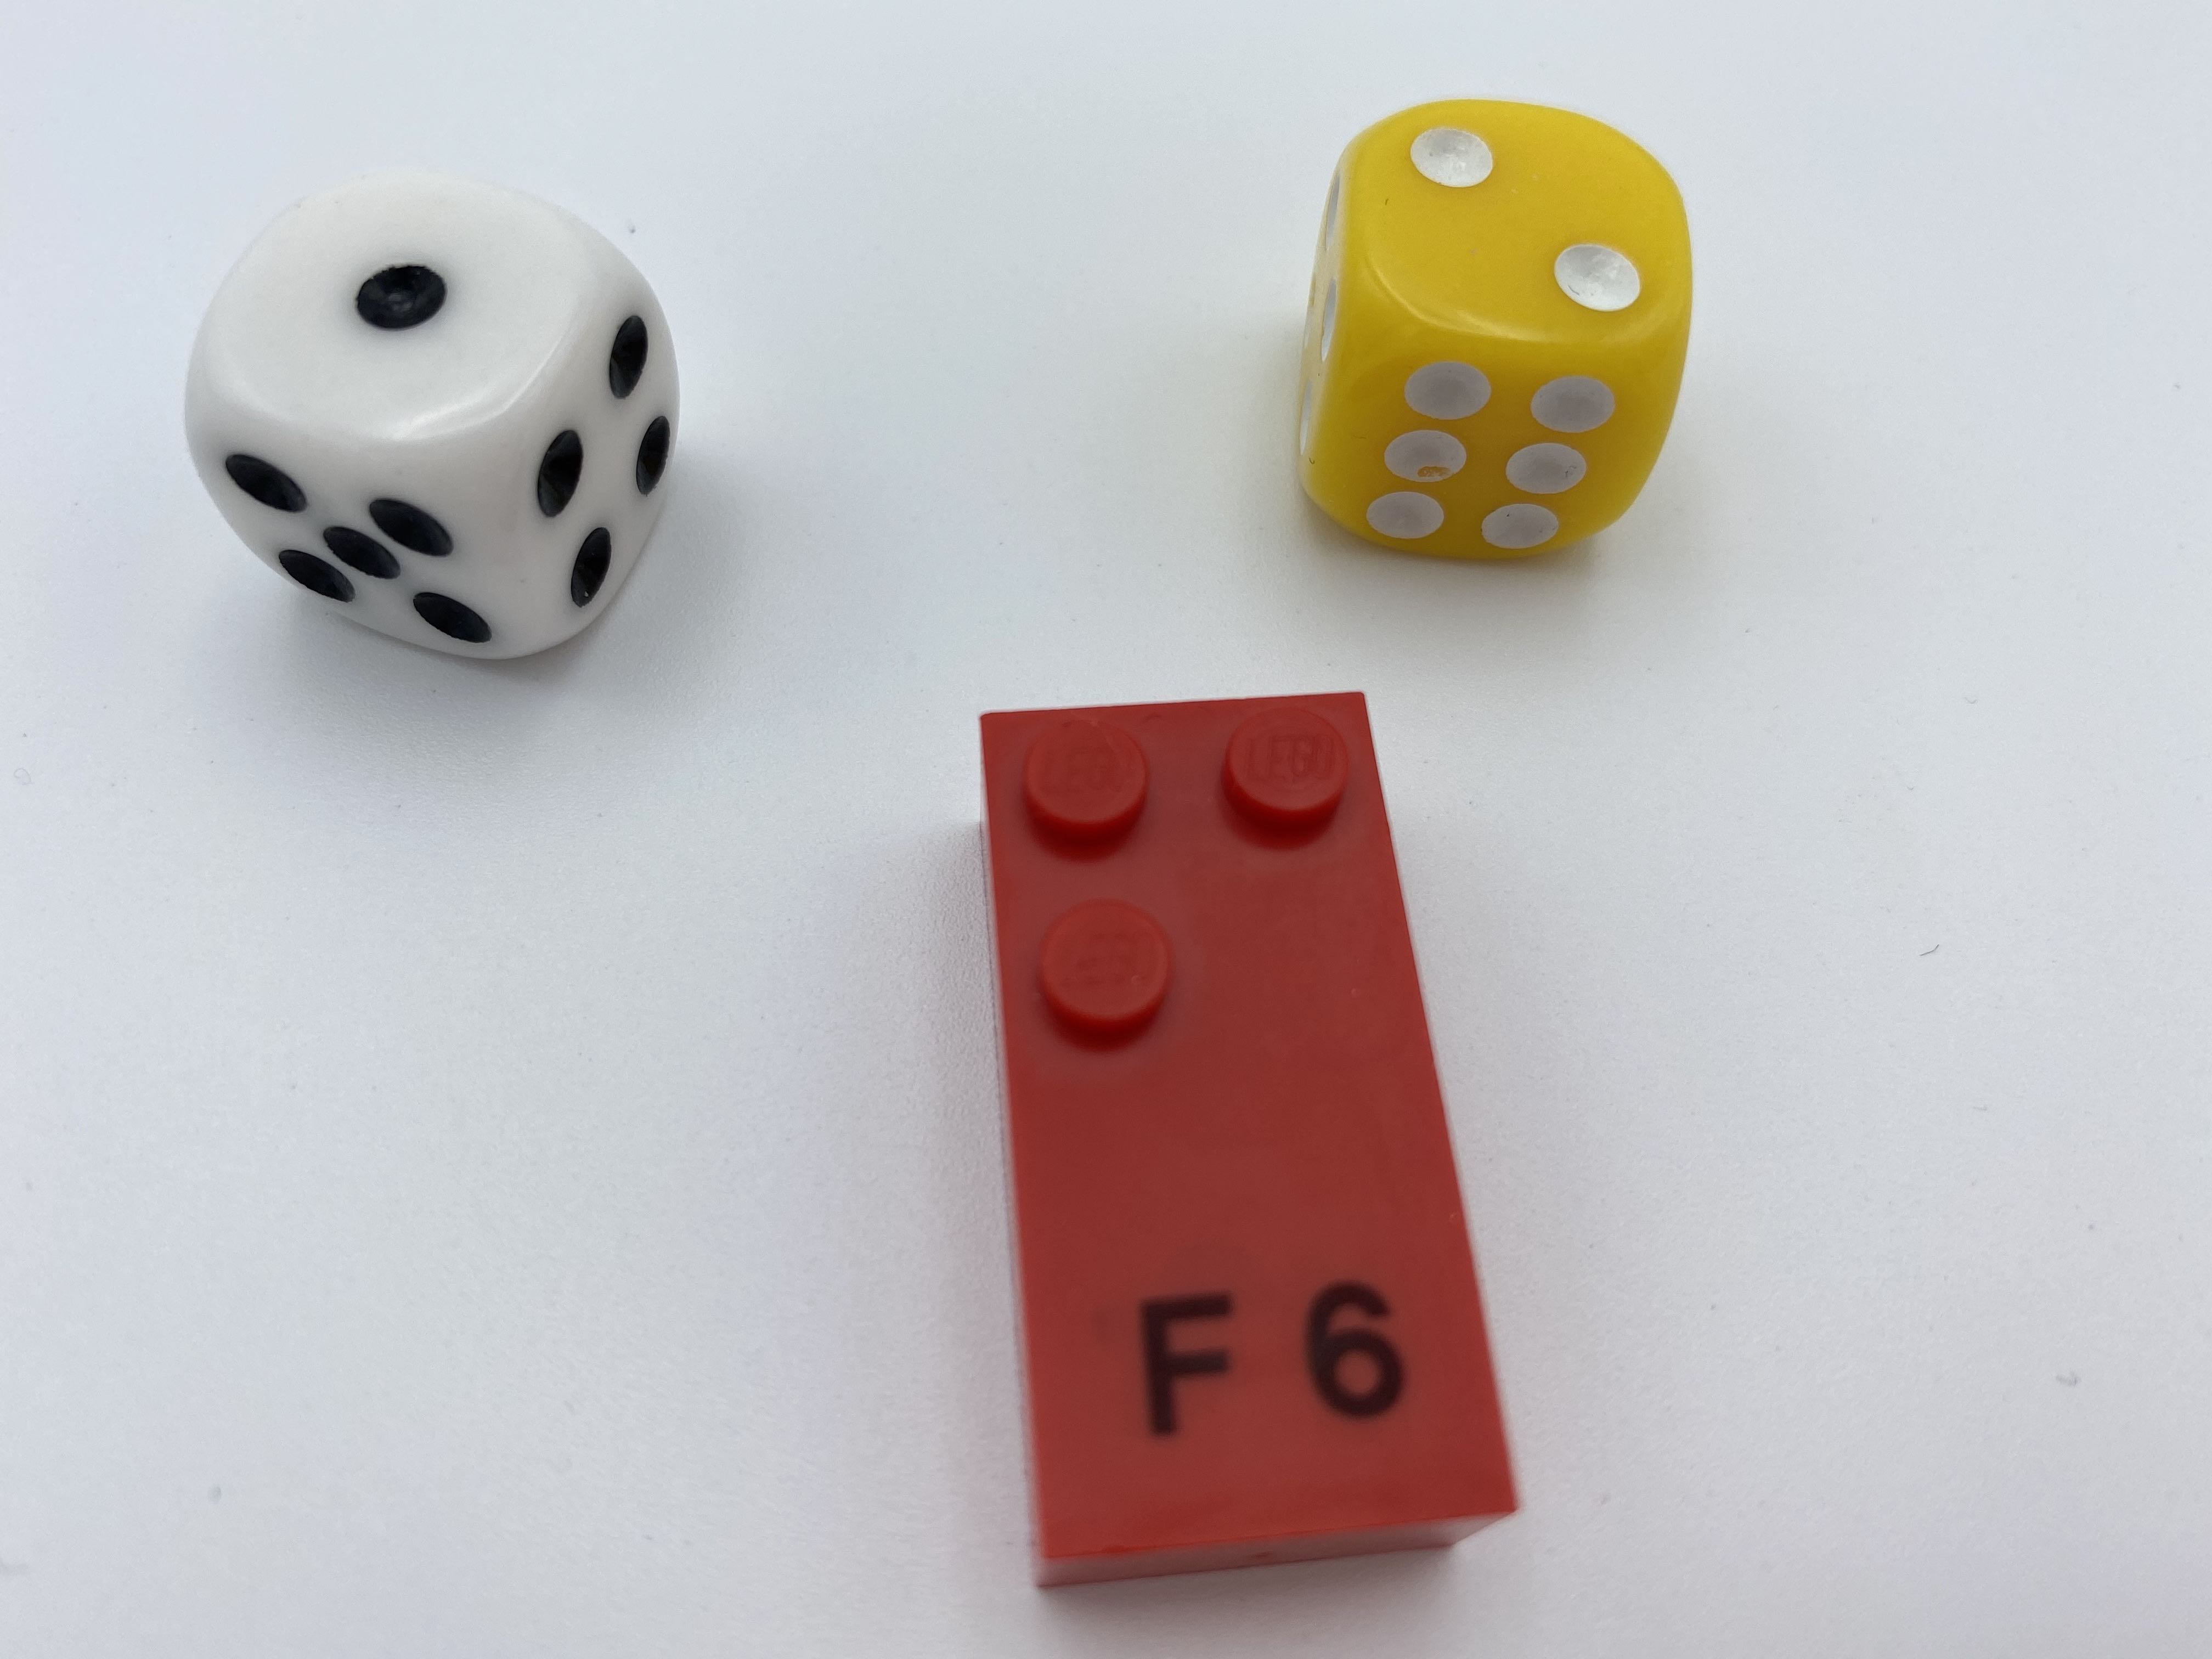 Dice roll: 1 and 2, letter brick F